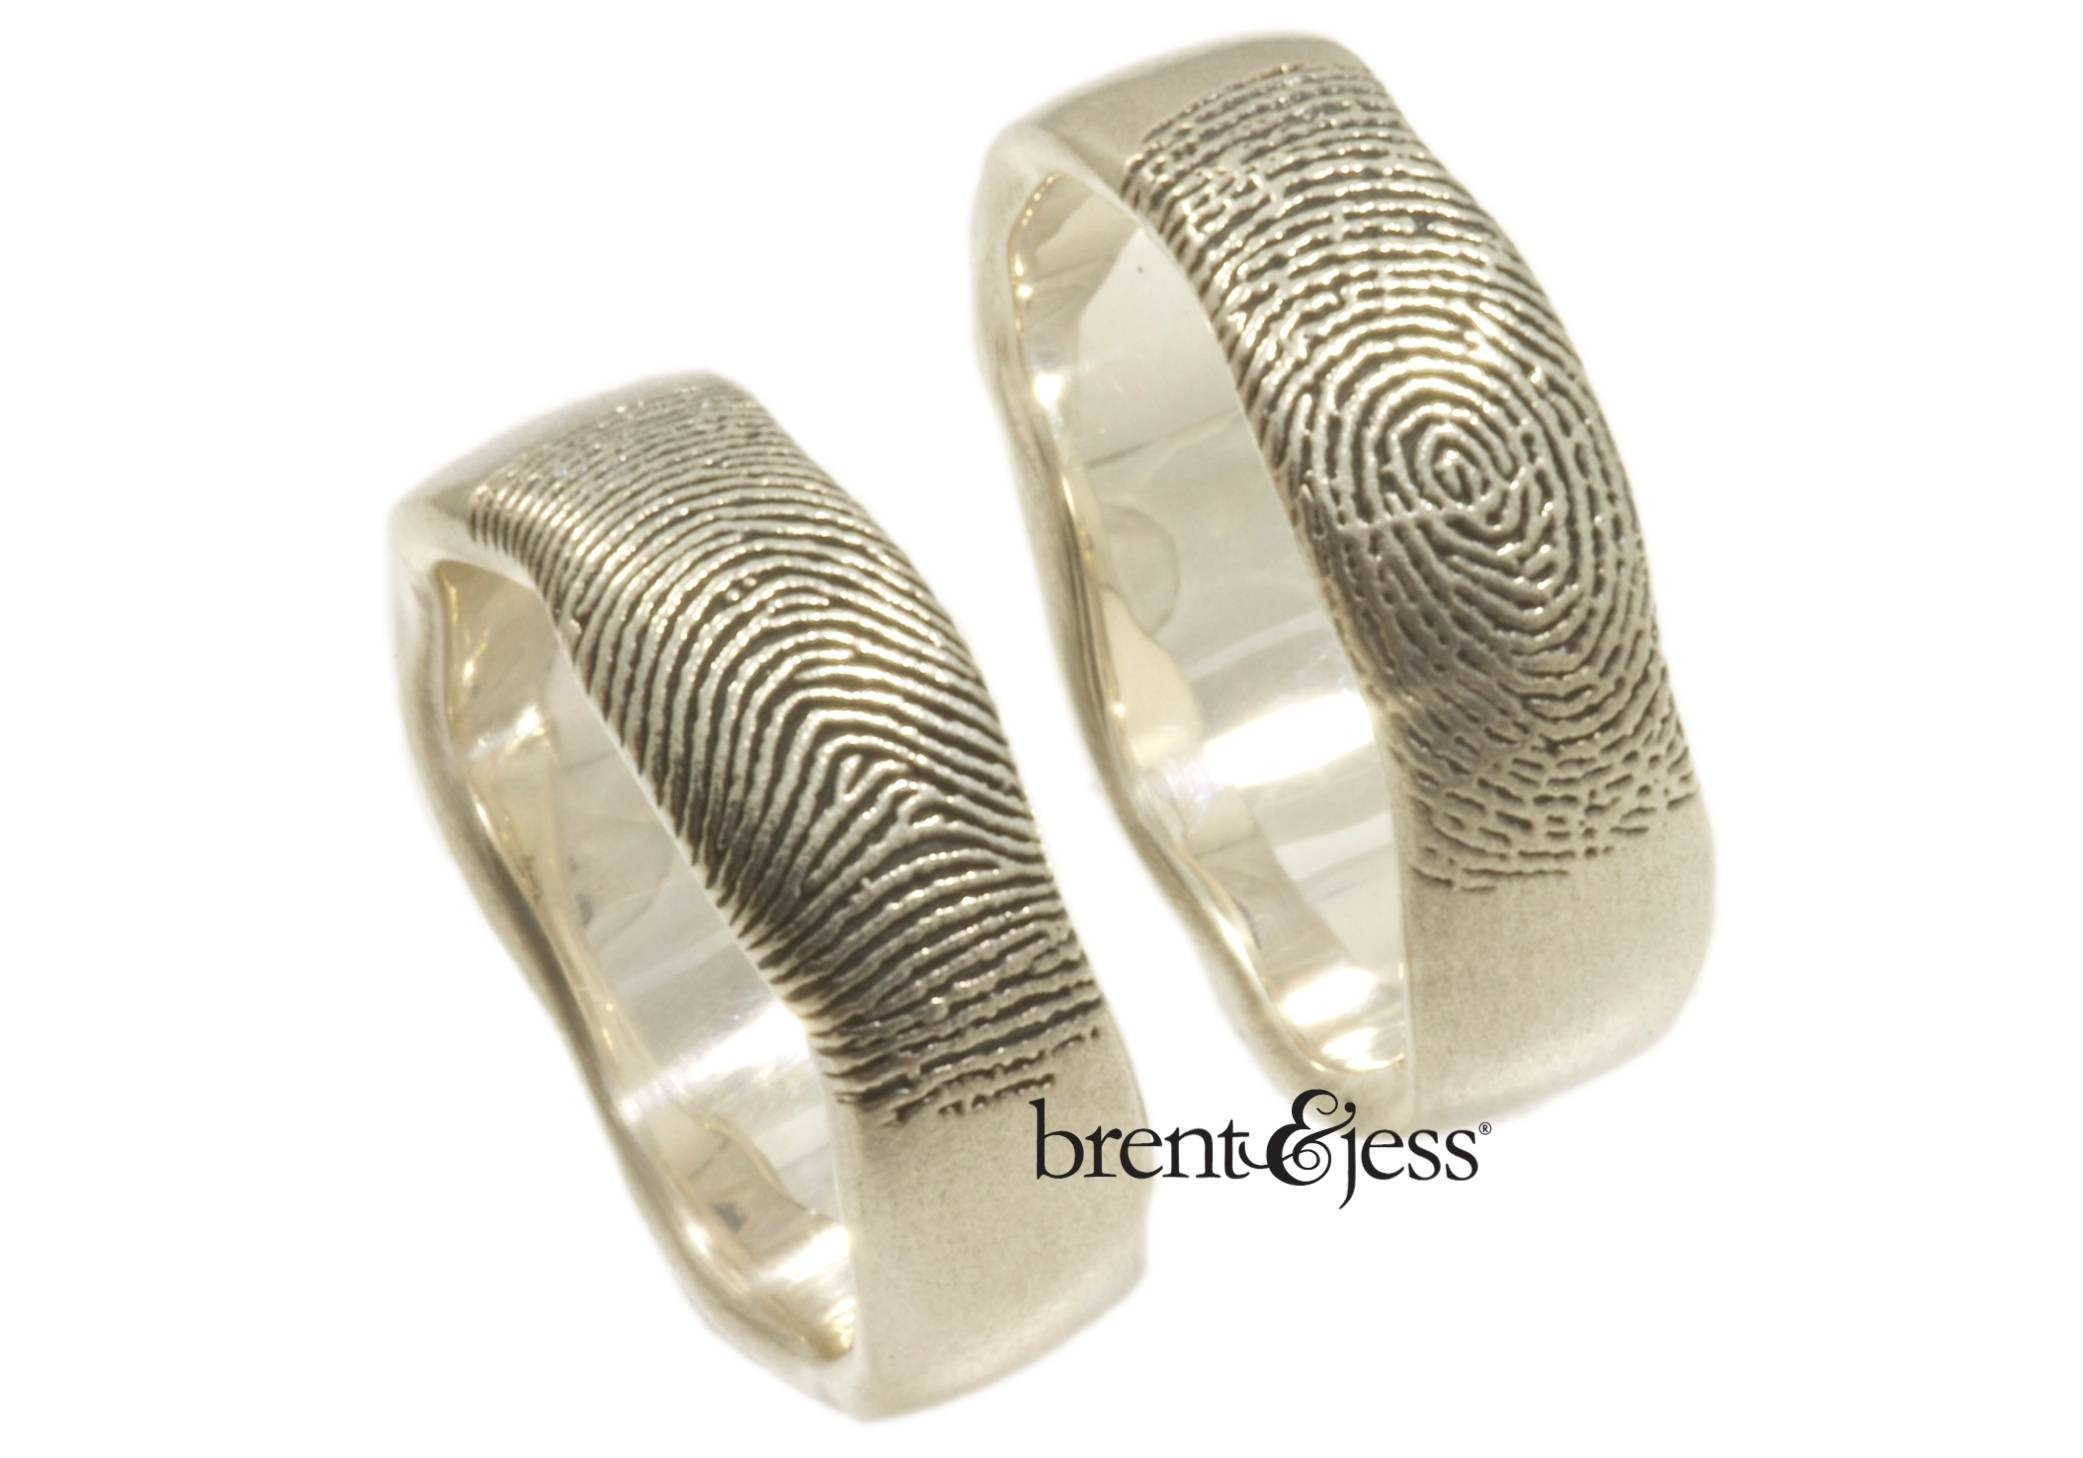 Brent&jess Fingerprint Wedding Rings · Ruffled Intended For Wedding Rings With Fingerprint (View 1 of 15)